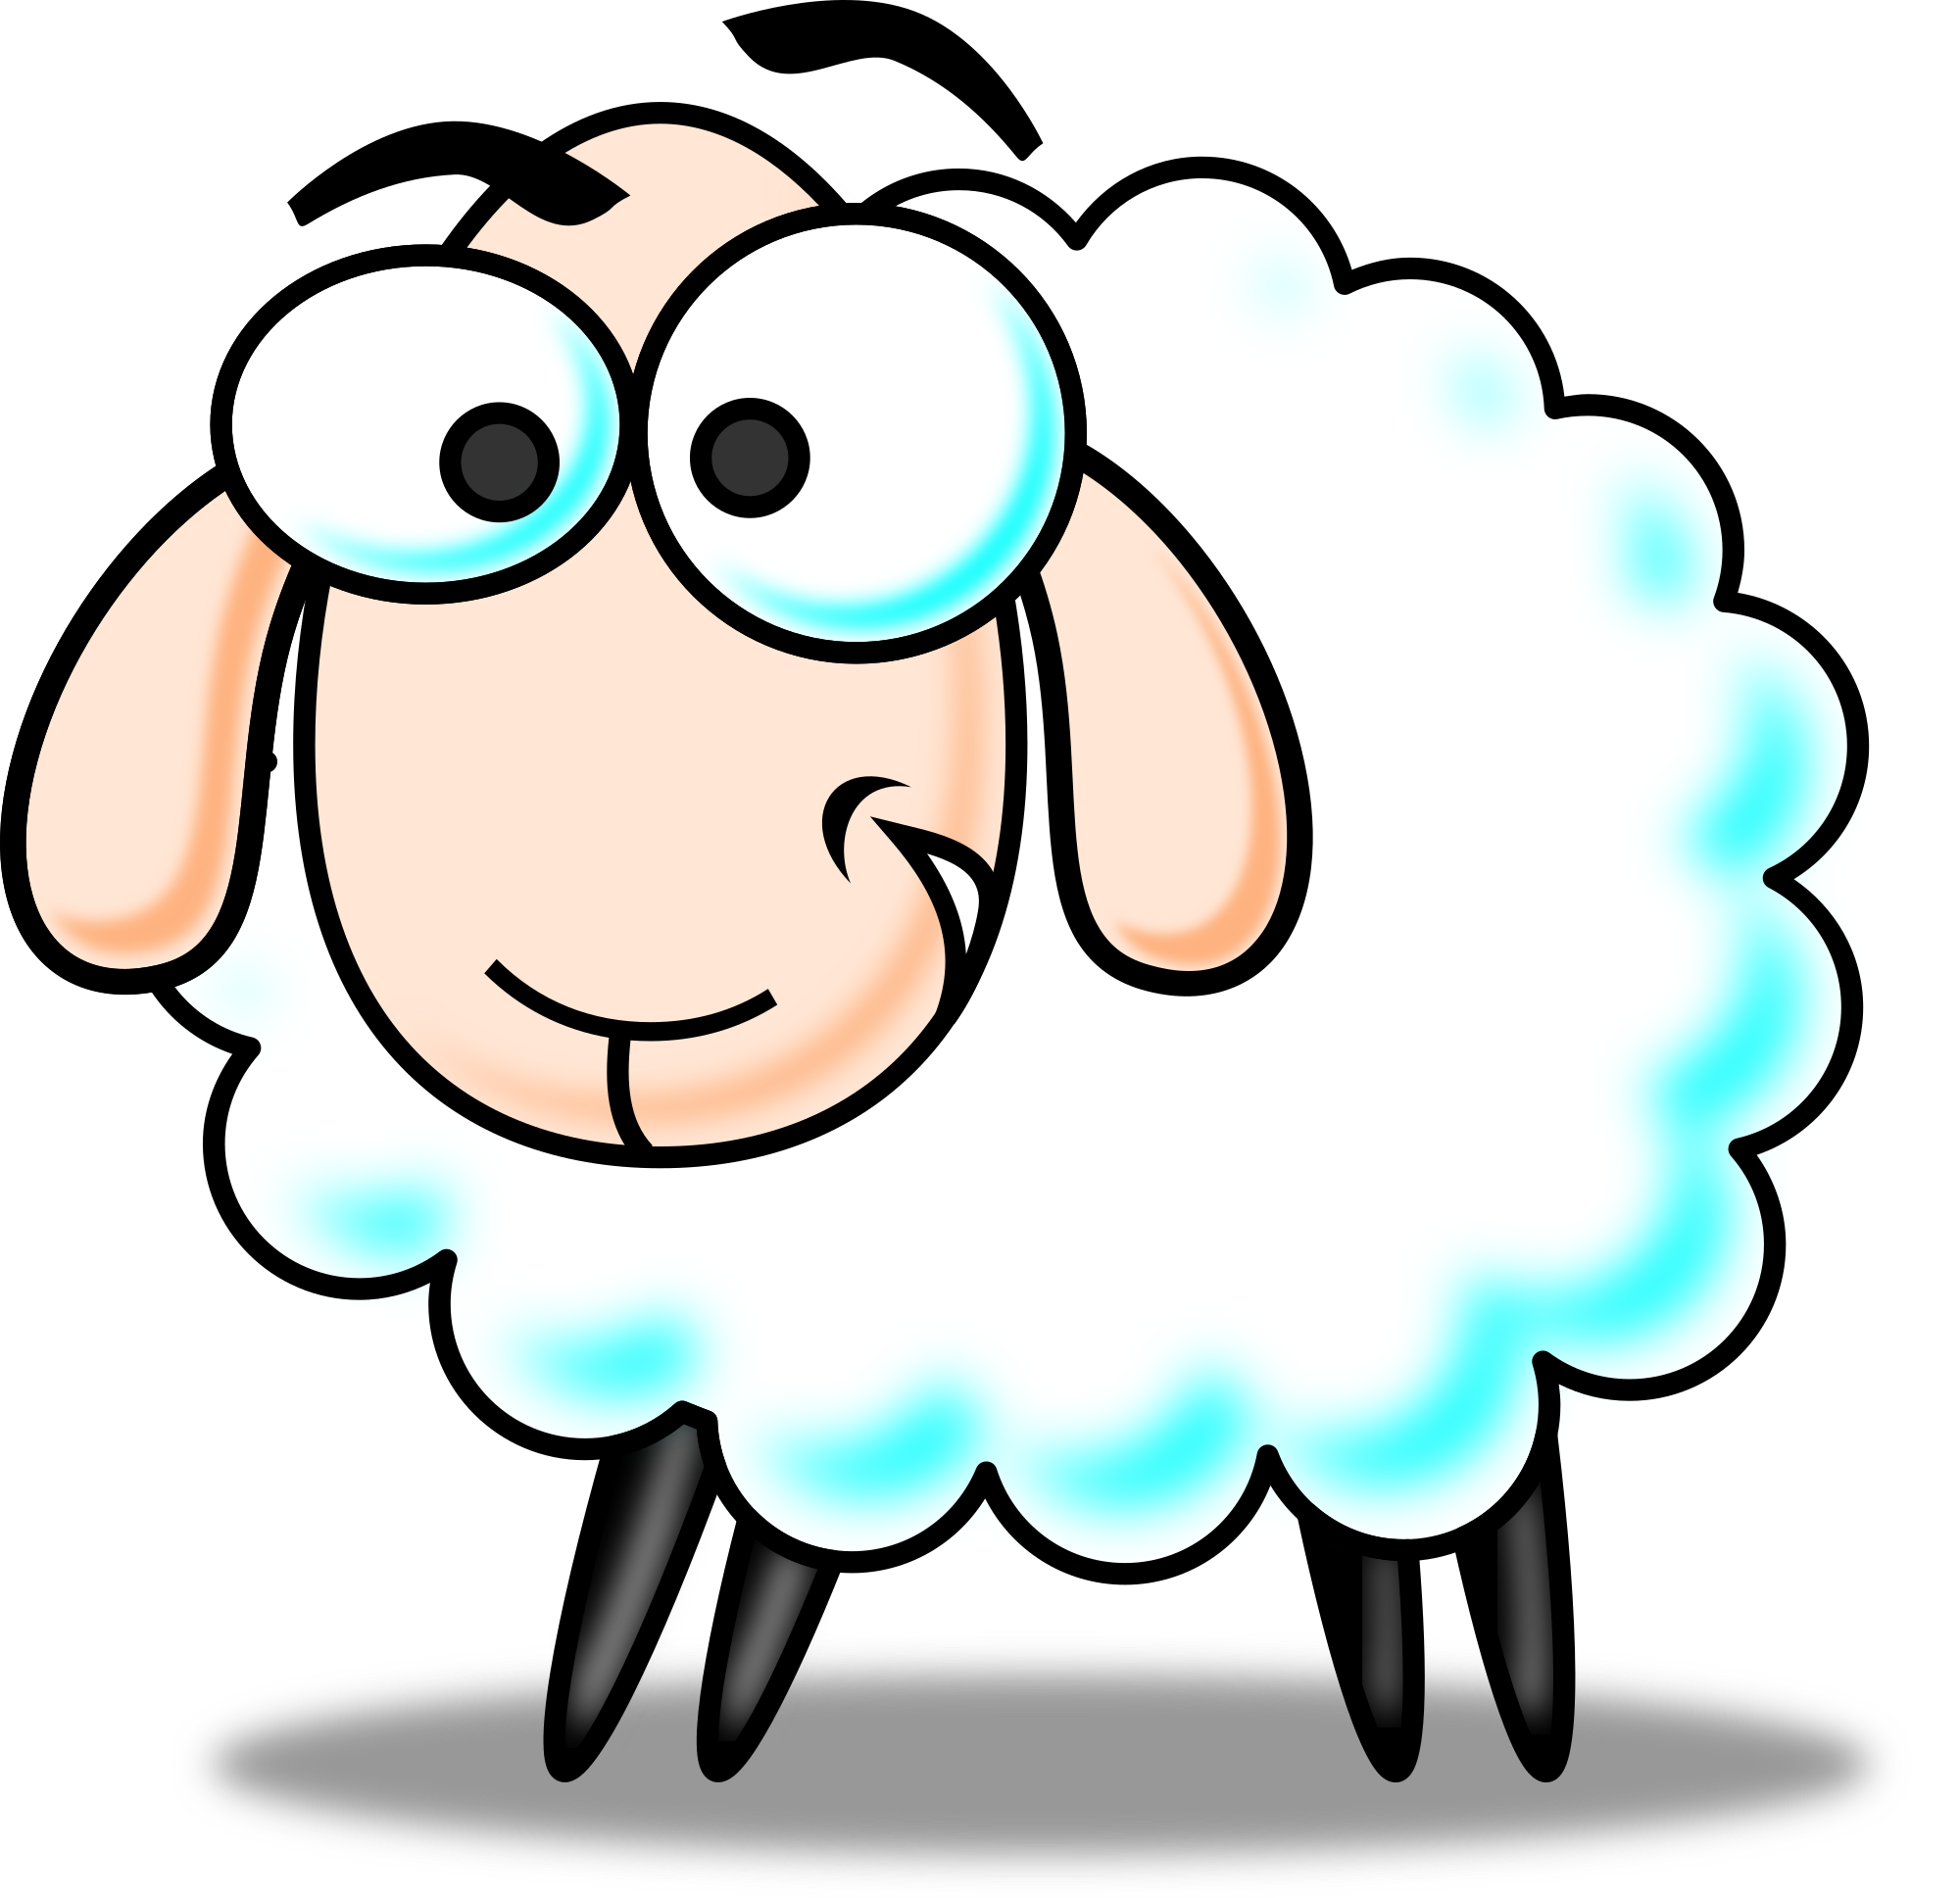 Clipart lambs jpg royalty free download Free Lamb Clip Art Pictures - Clipartix jpg royalty free download